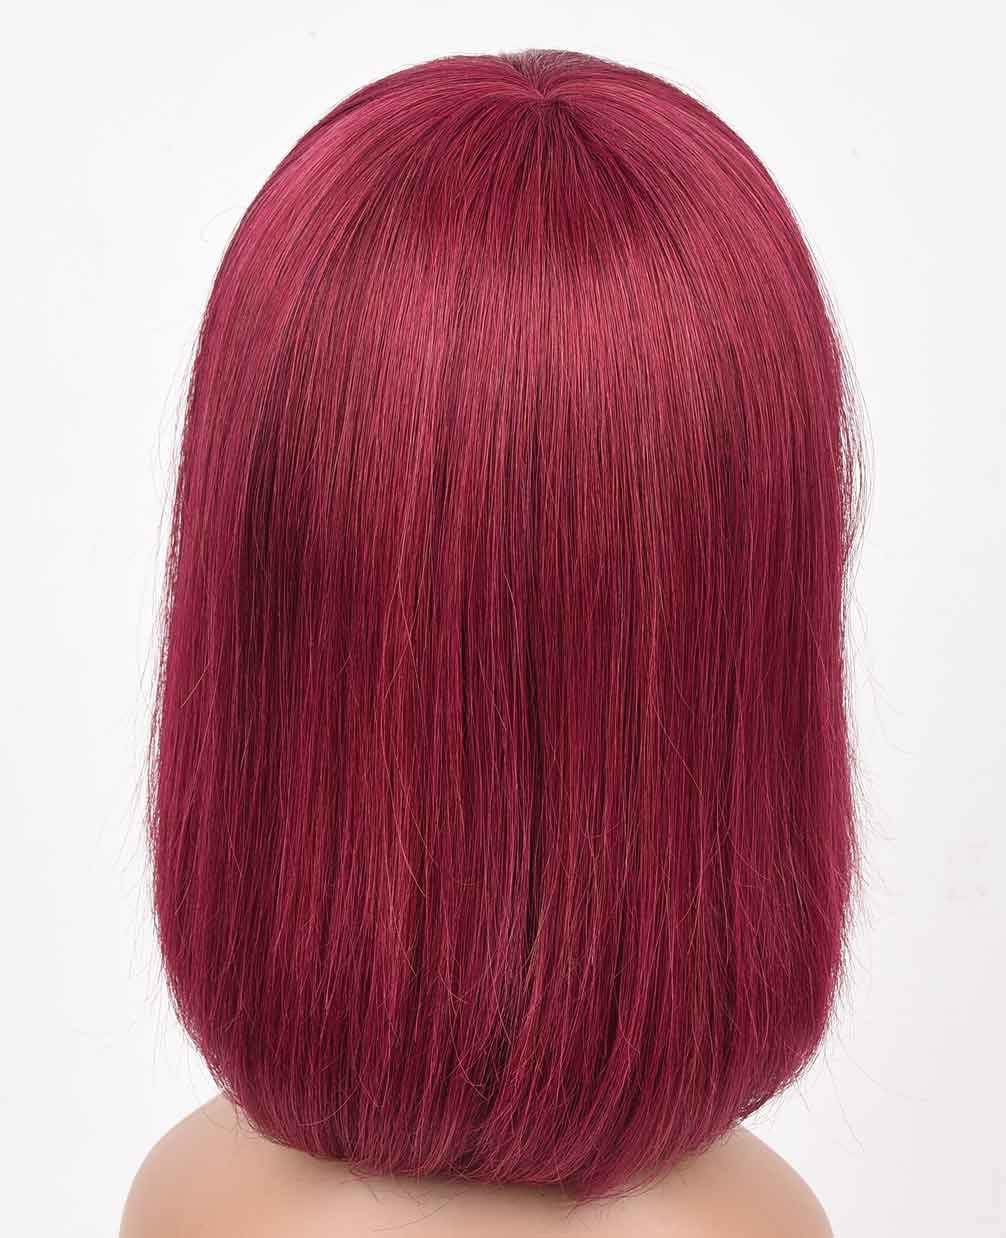 Wine Red Bob Wig with Bangs Human Hair Machine Made None Lace Front Wigs 99j bob wigs